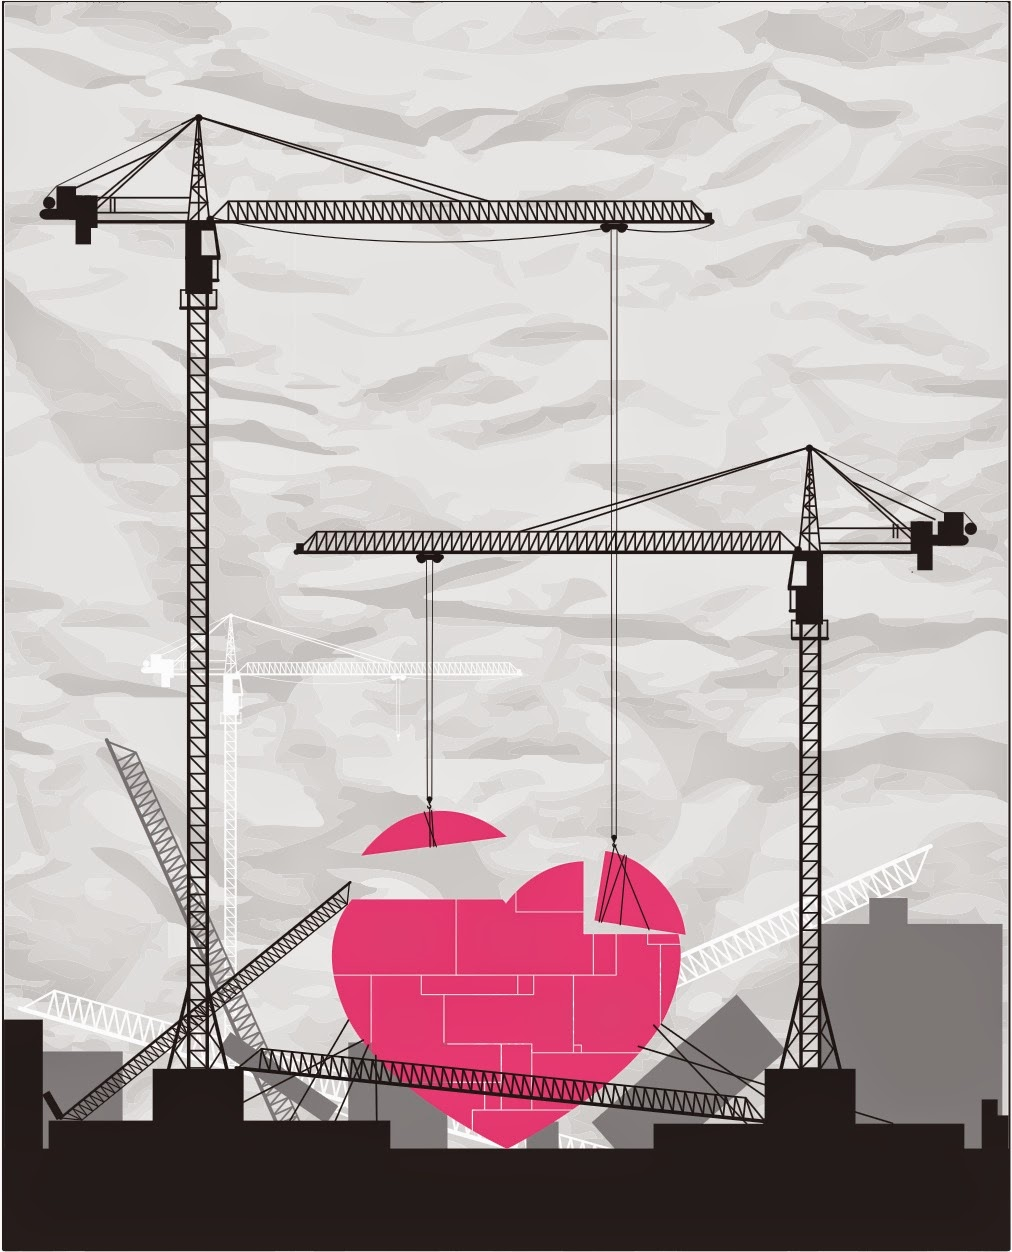 Happy Valentine's Day from KBIConstruction & Real Estate Practice